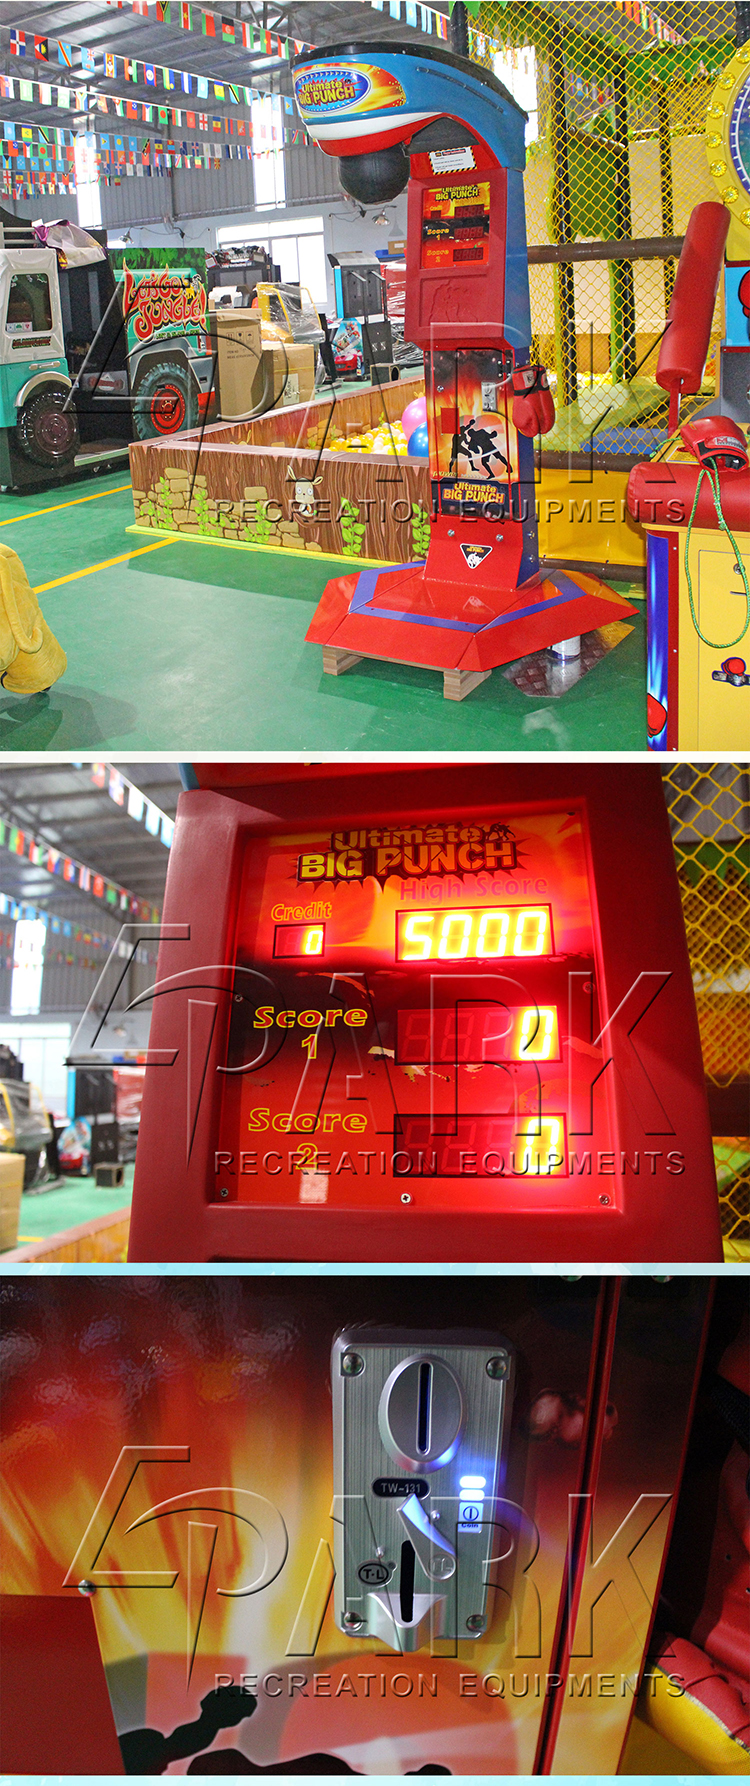 Ultimate Big Punch cheap arcade games for sale  video game machines  coin operated game arcade machine